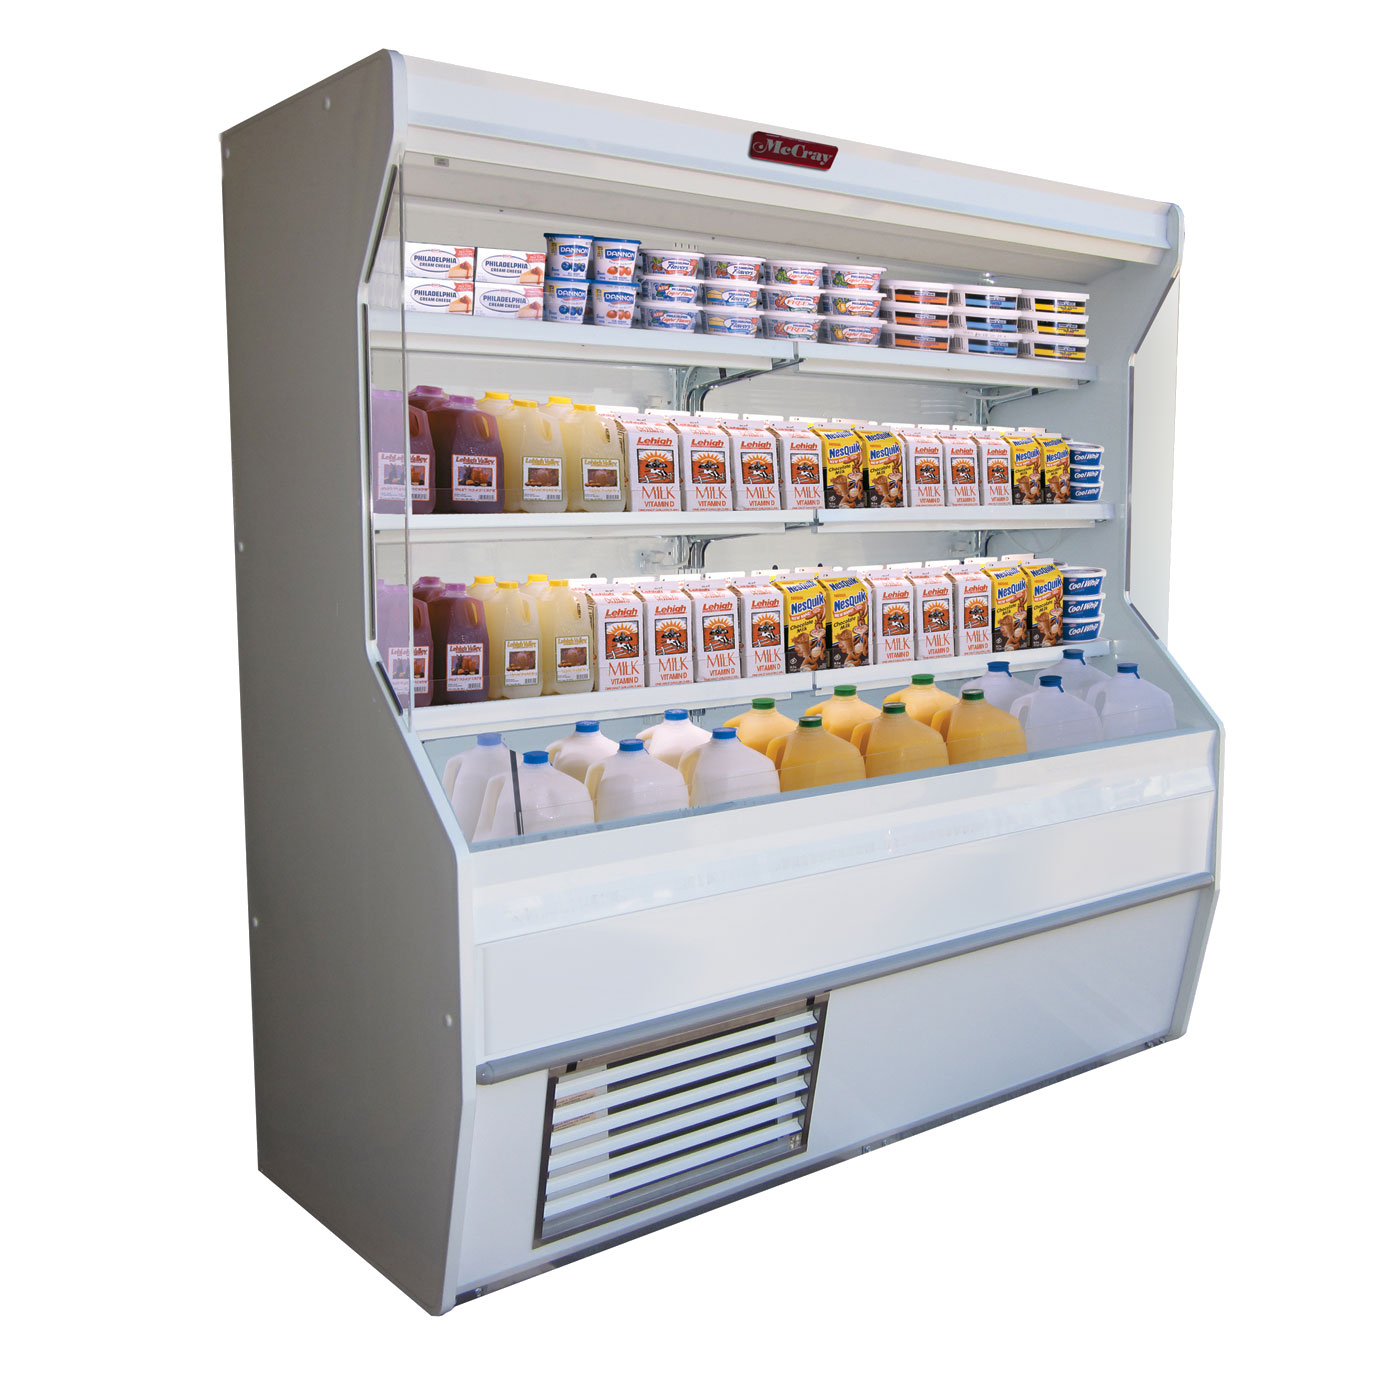 Howard-McCray R-D32E-6-S-LED merchandiser, open refrigerated display